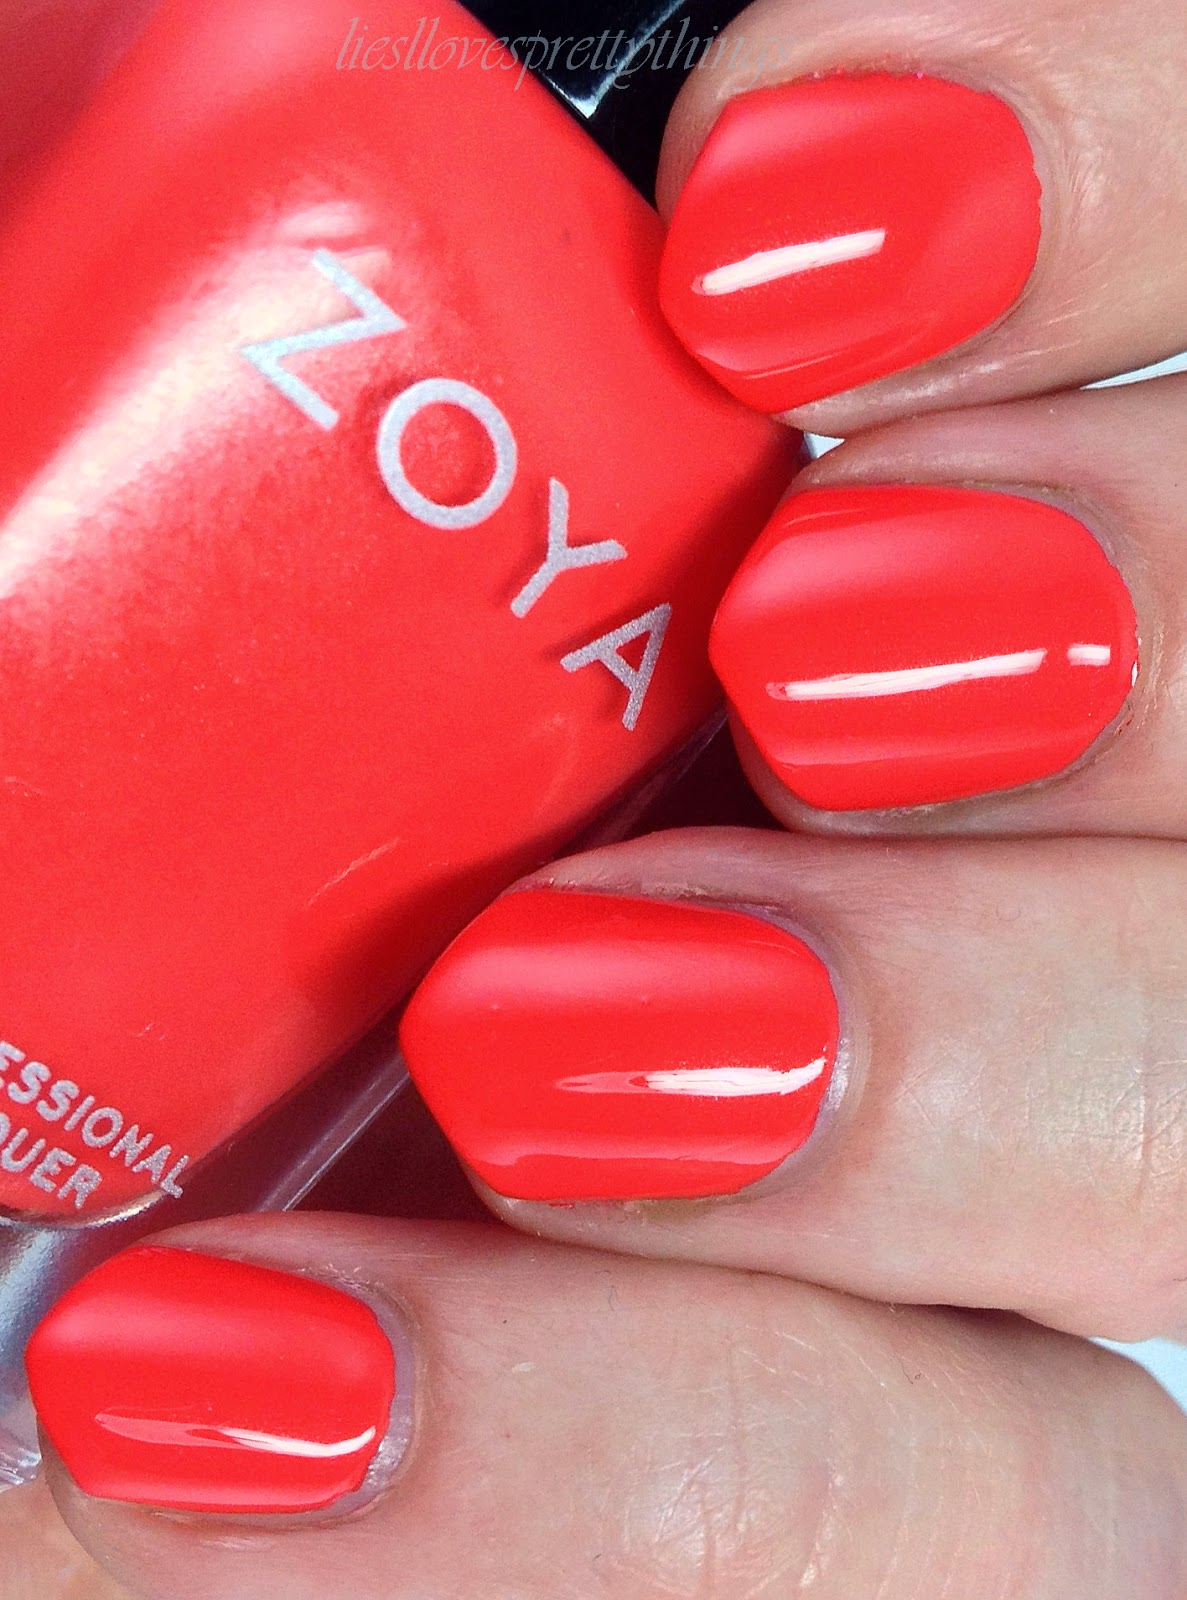 Zoya Rocha swatch and review